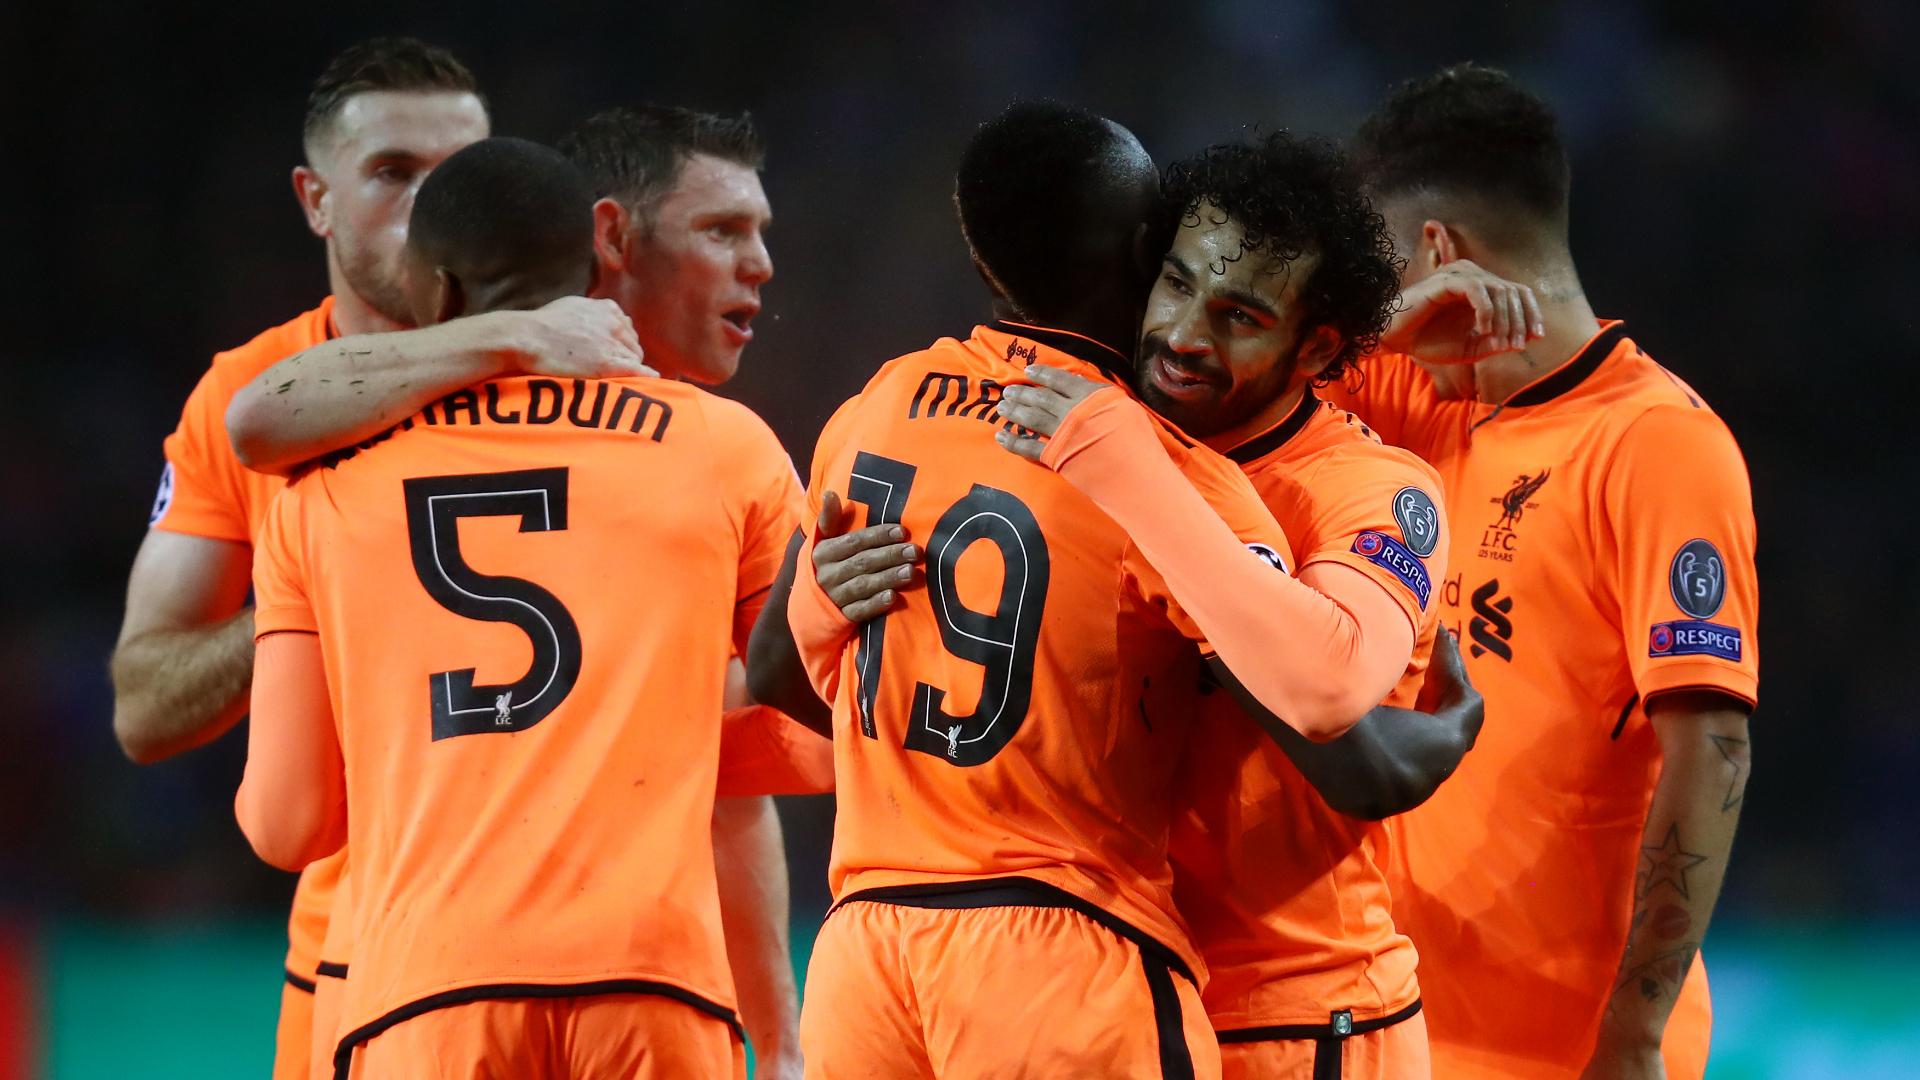 Liverpool put five past Porto as Real beat PSG 3-1